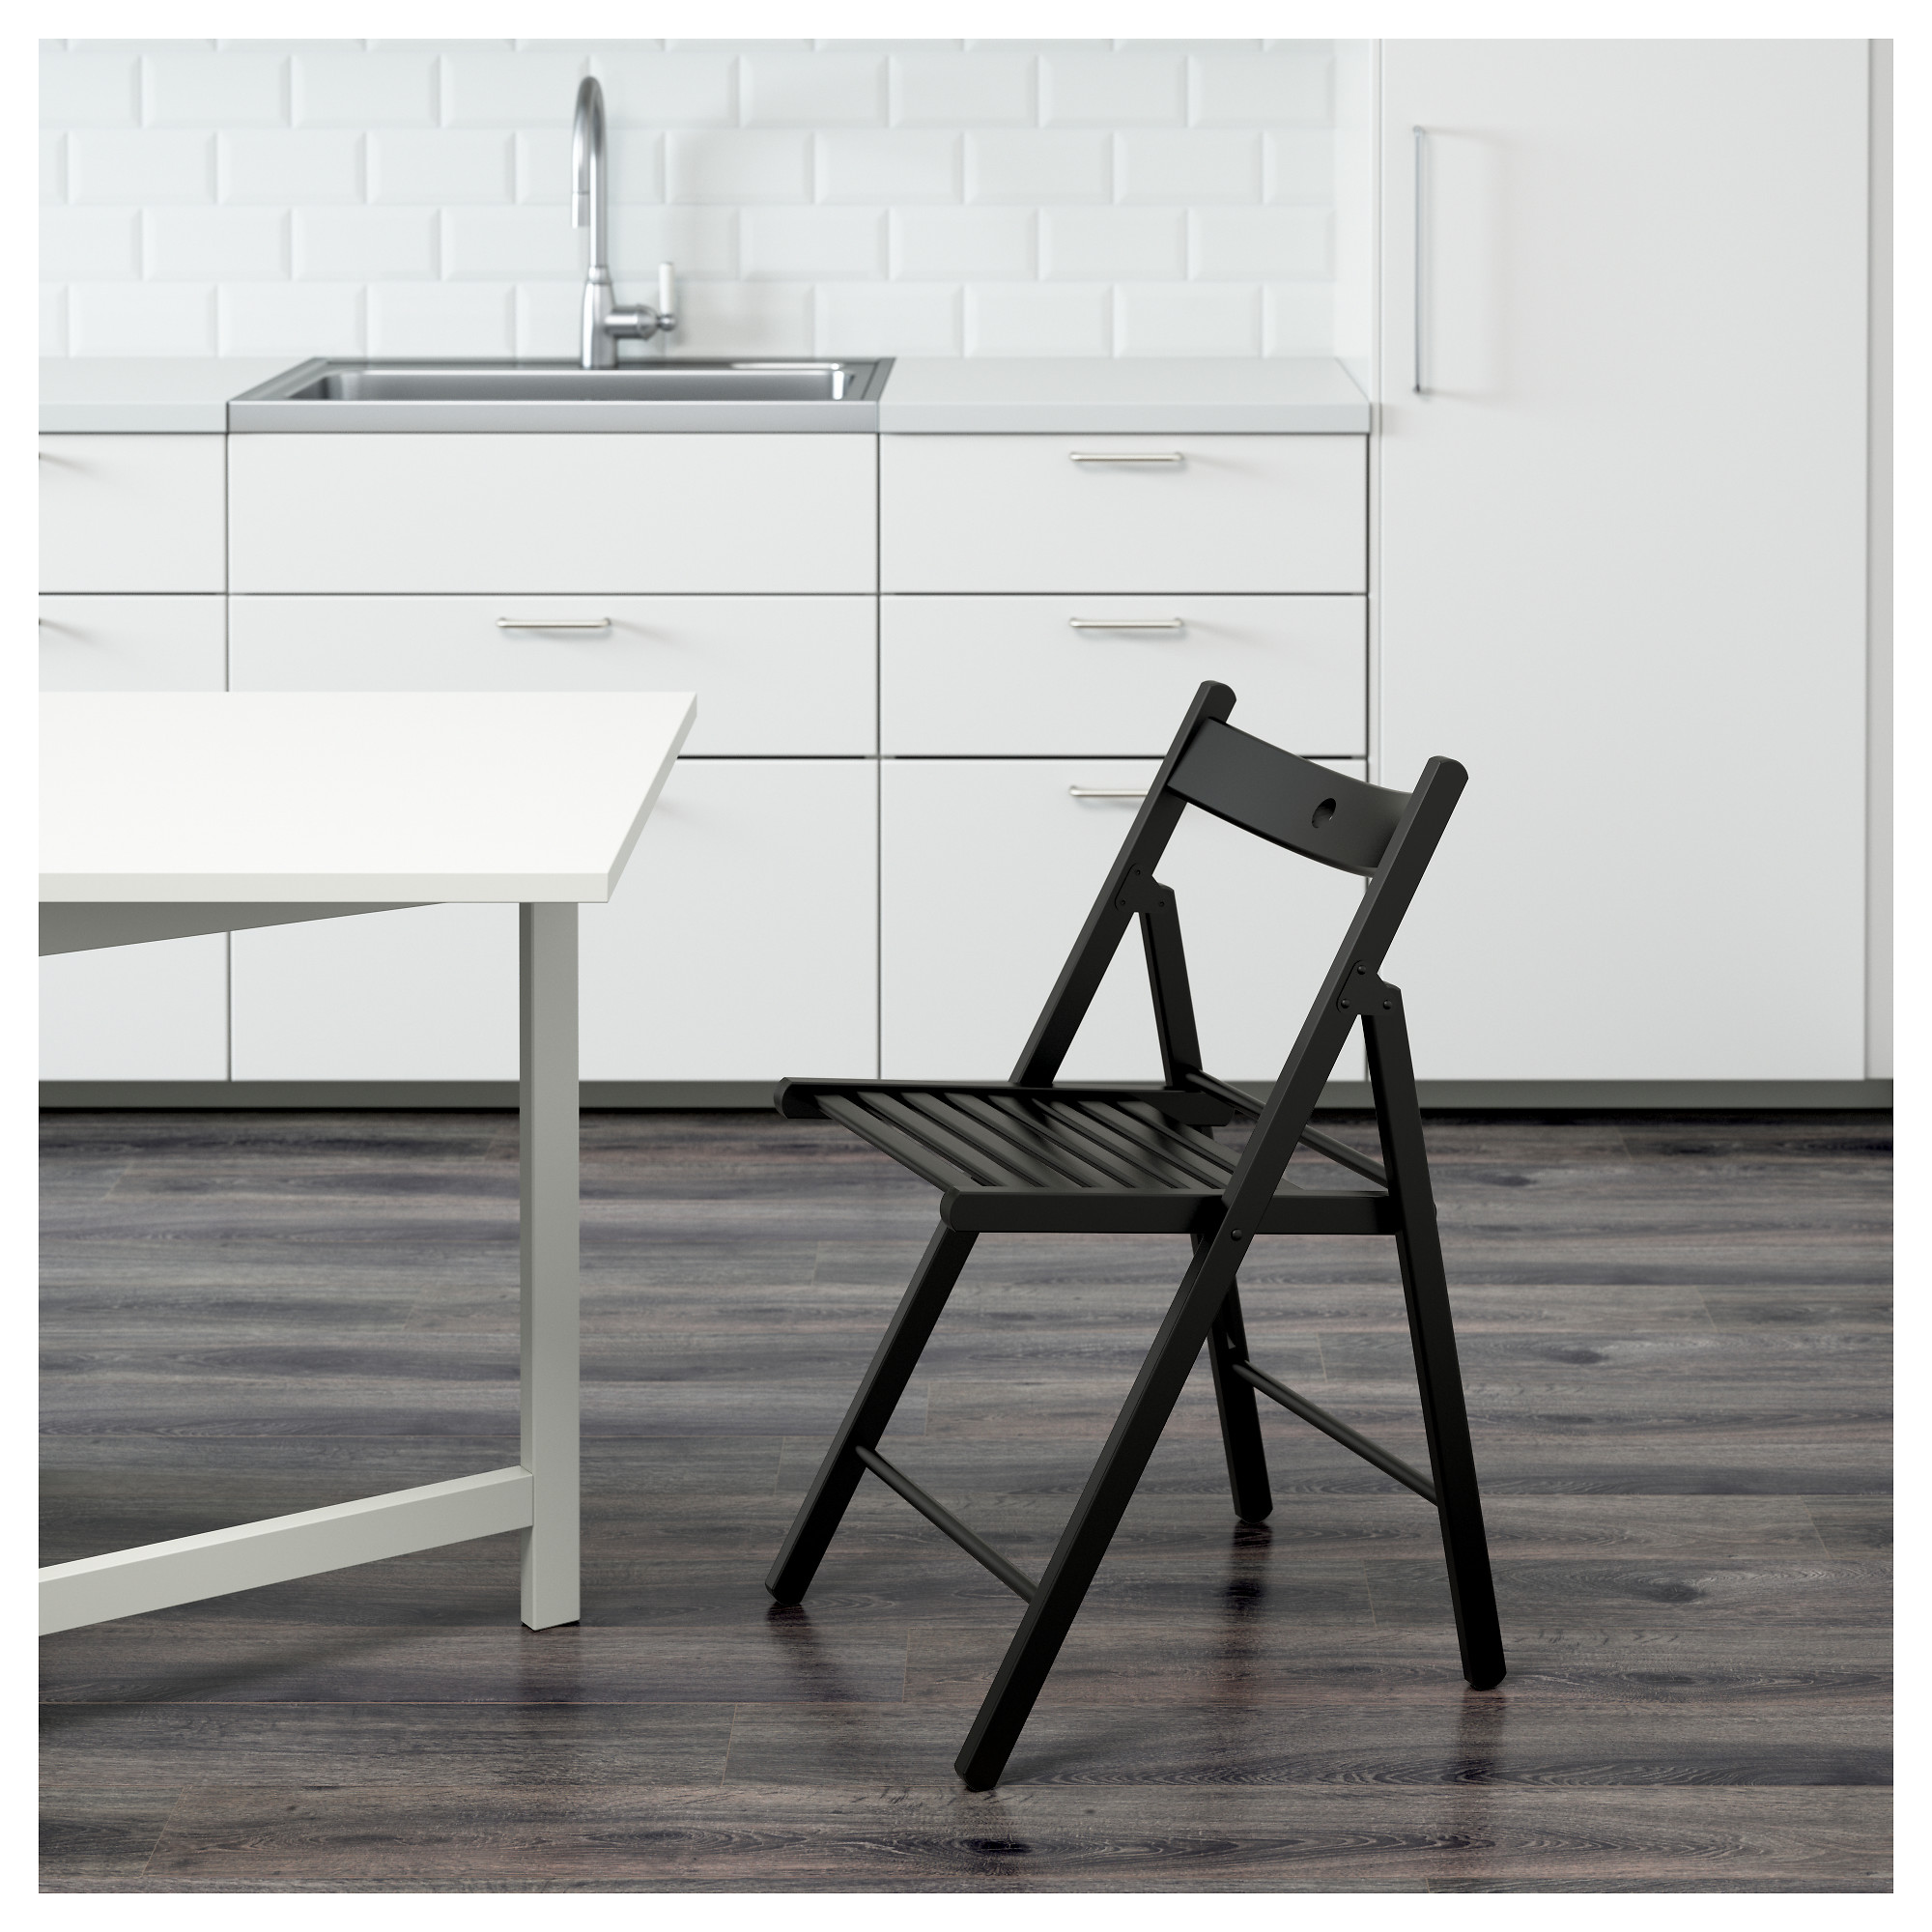 Terje Folding Chair Black